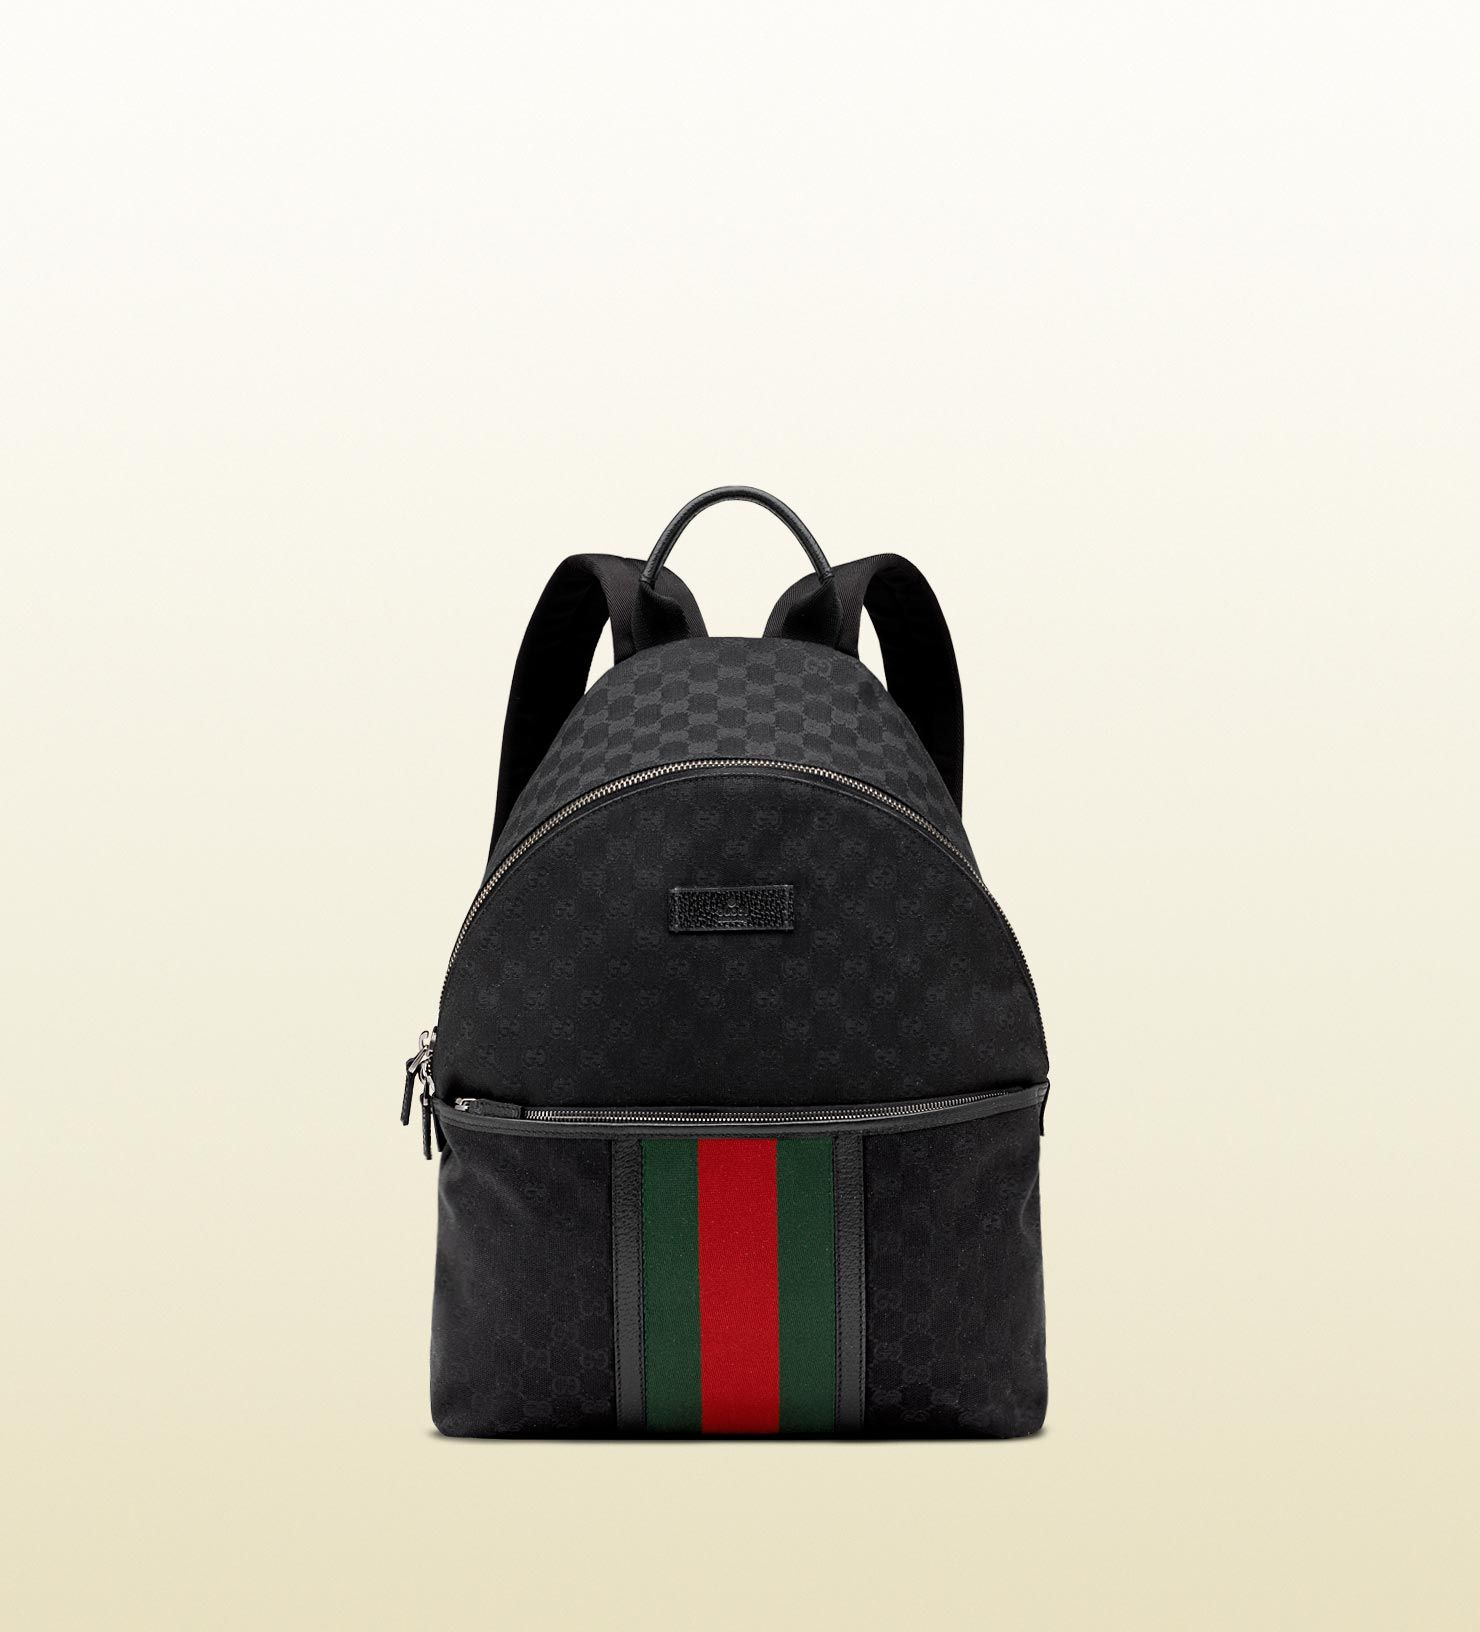 34fe9aa5b7af medium backpack w/ classic double G print and green red green web ...